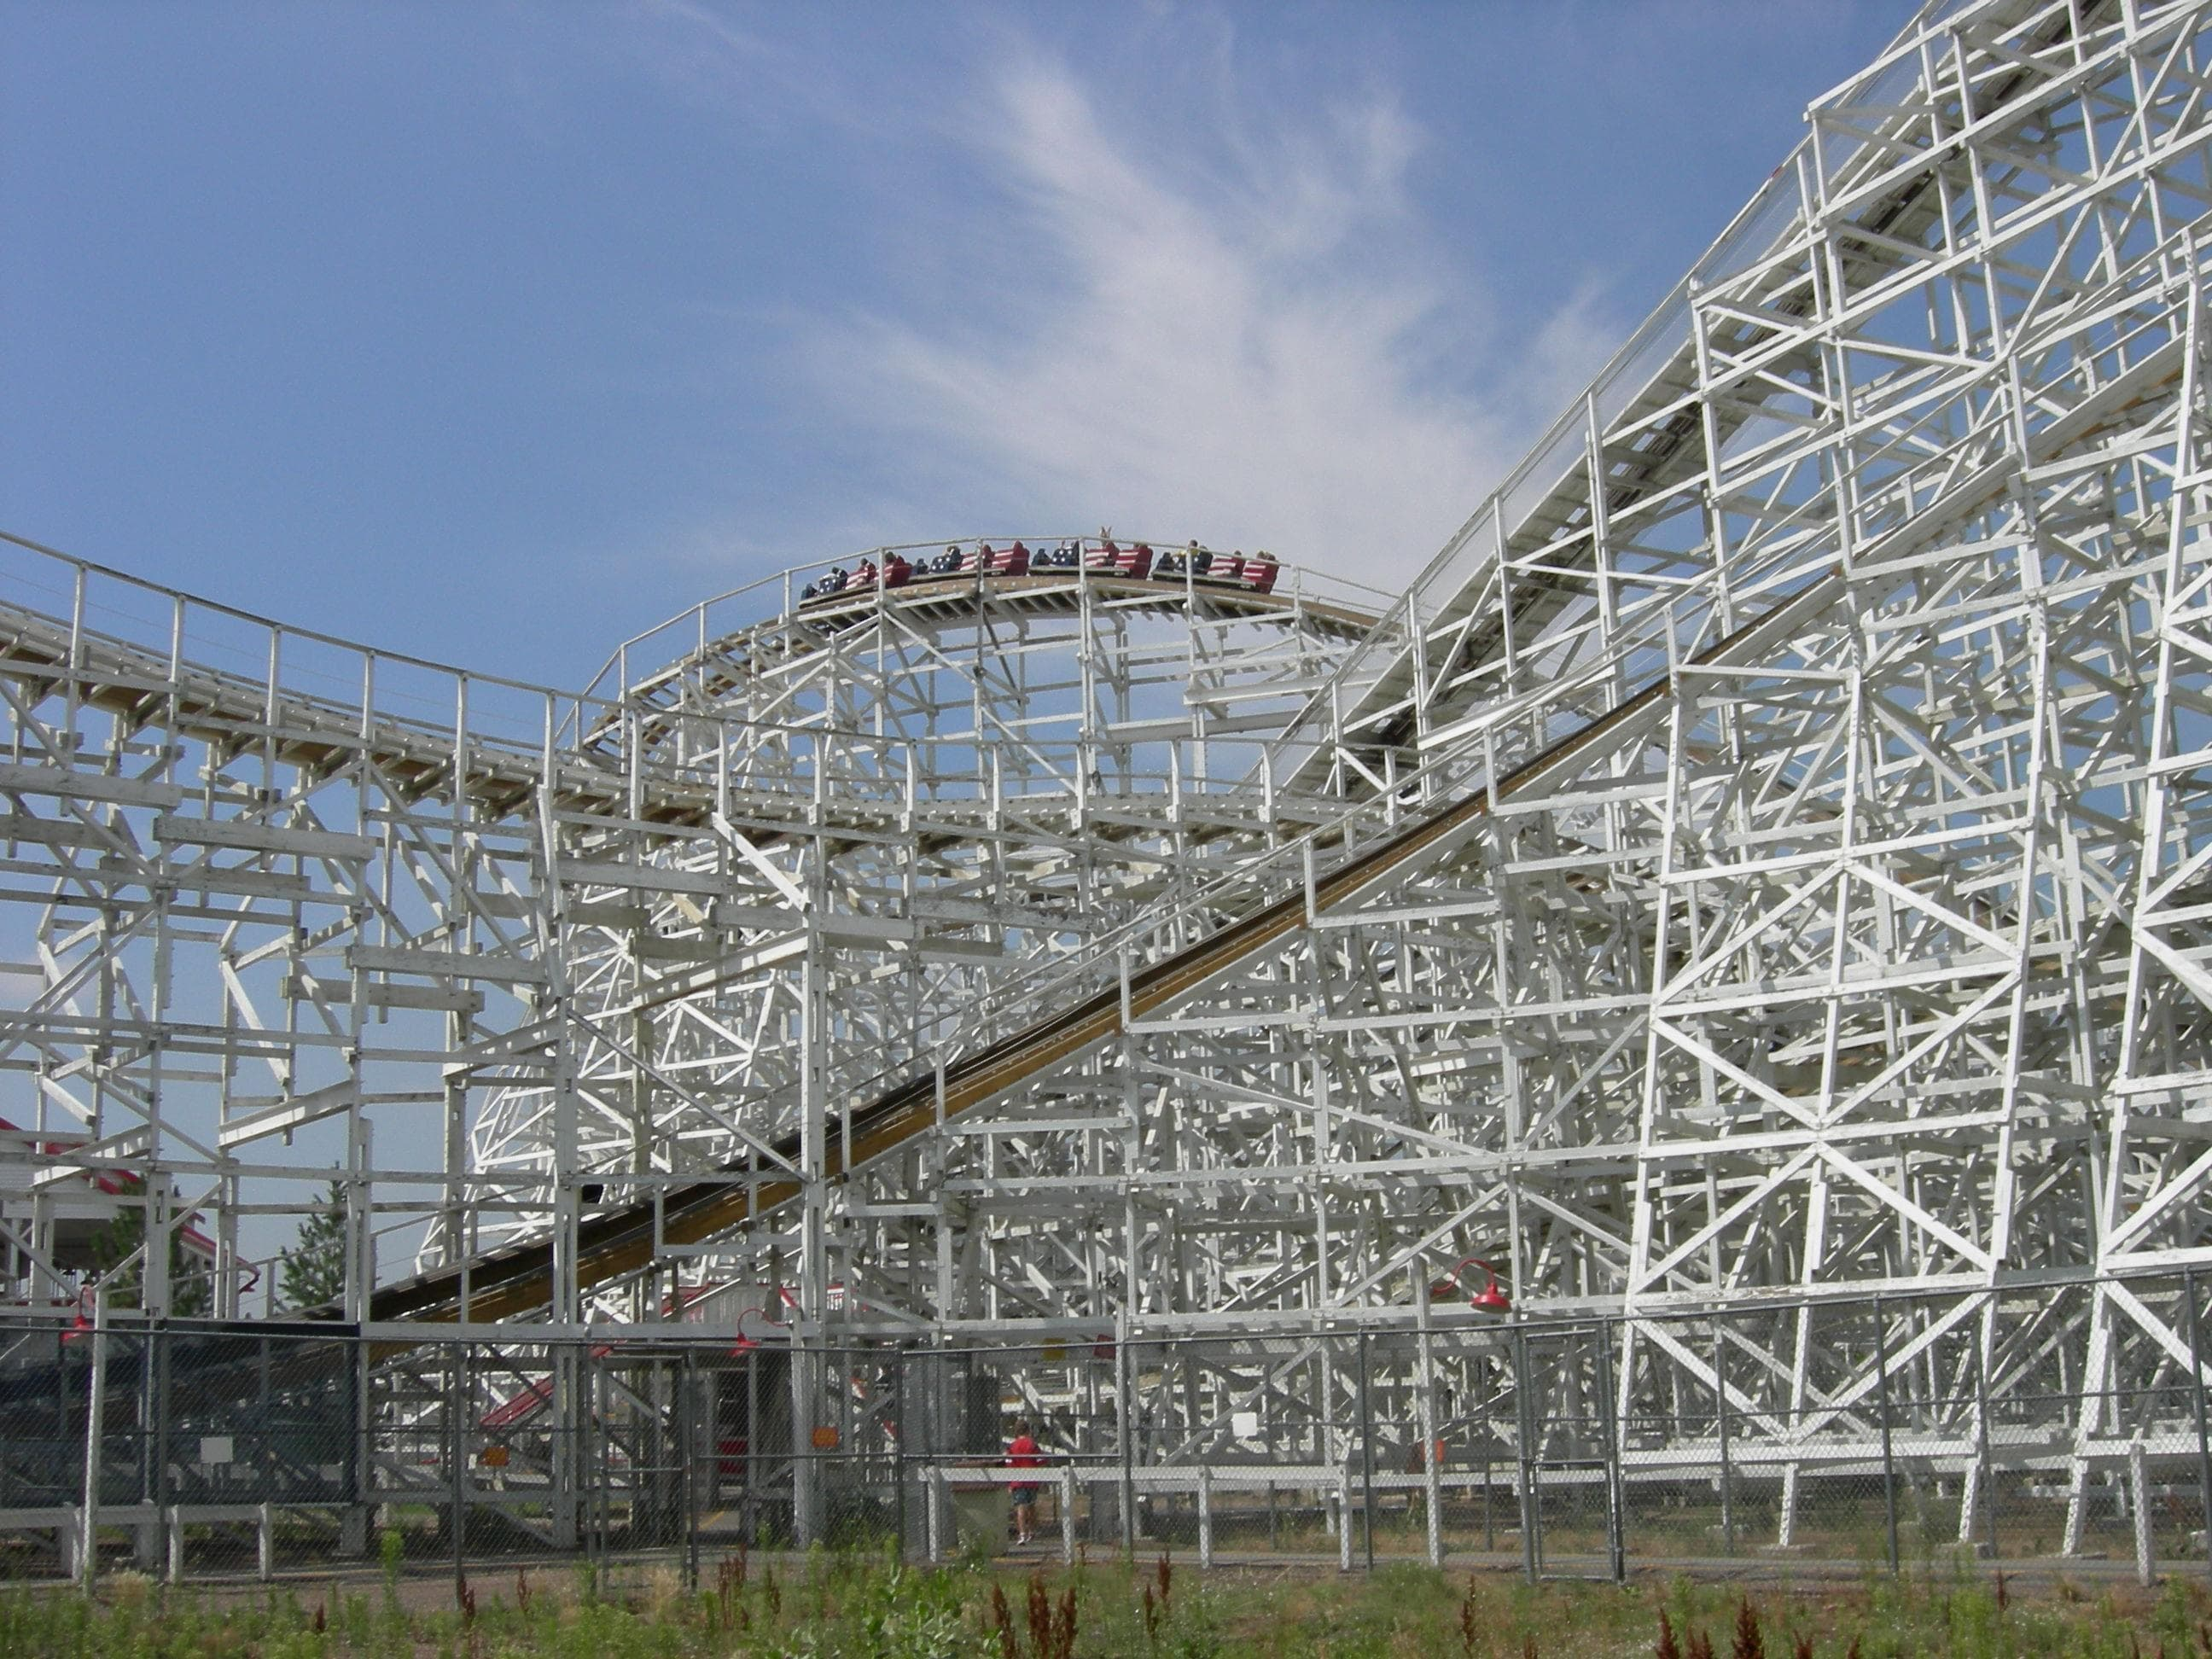 Random Best Rides at Elitch Gardens Thumb Image